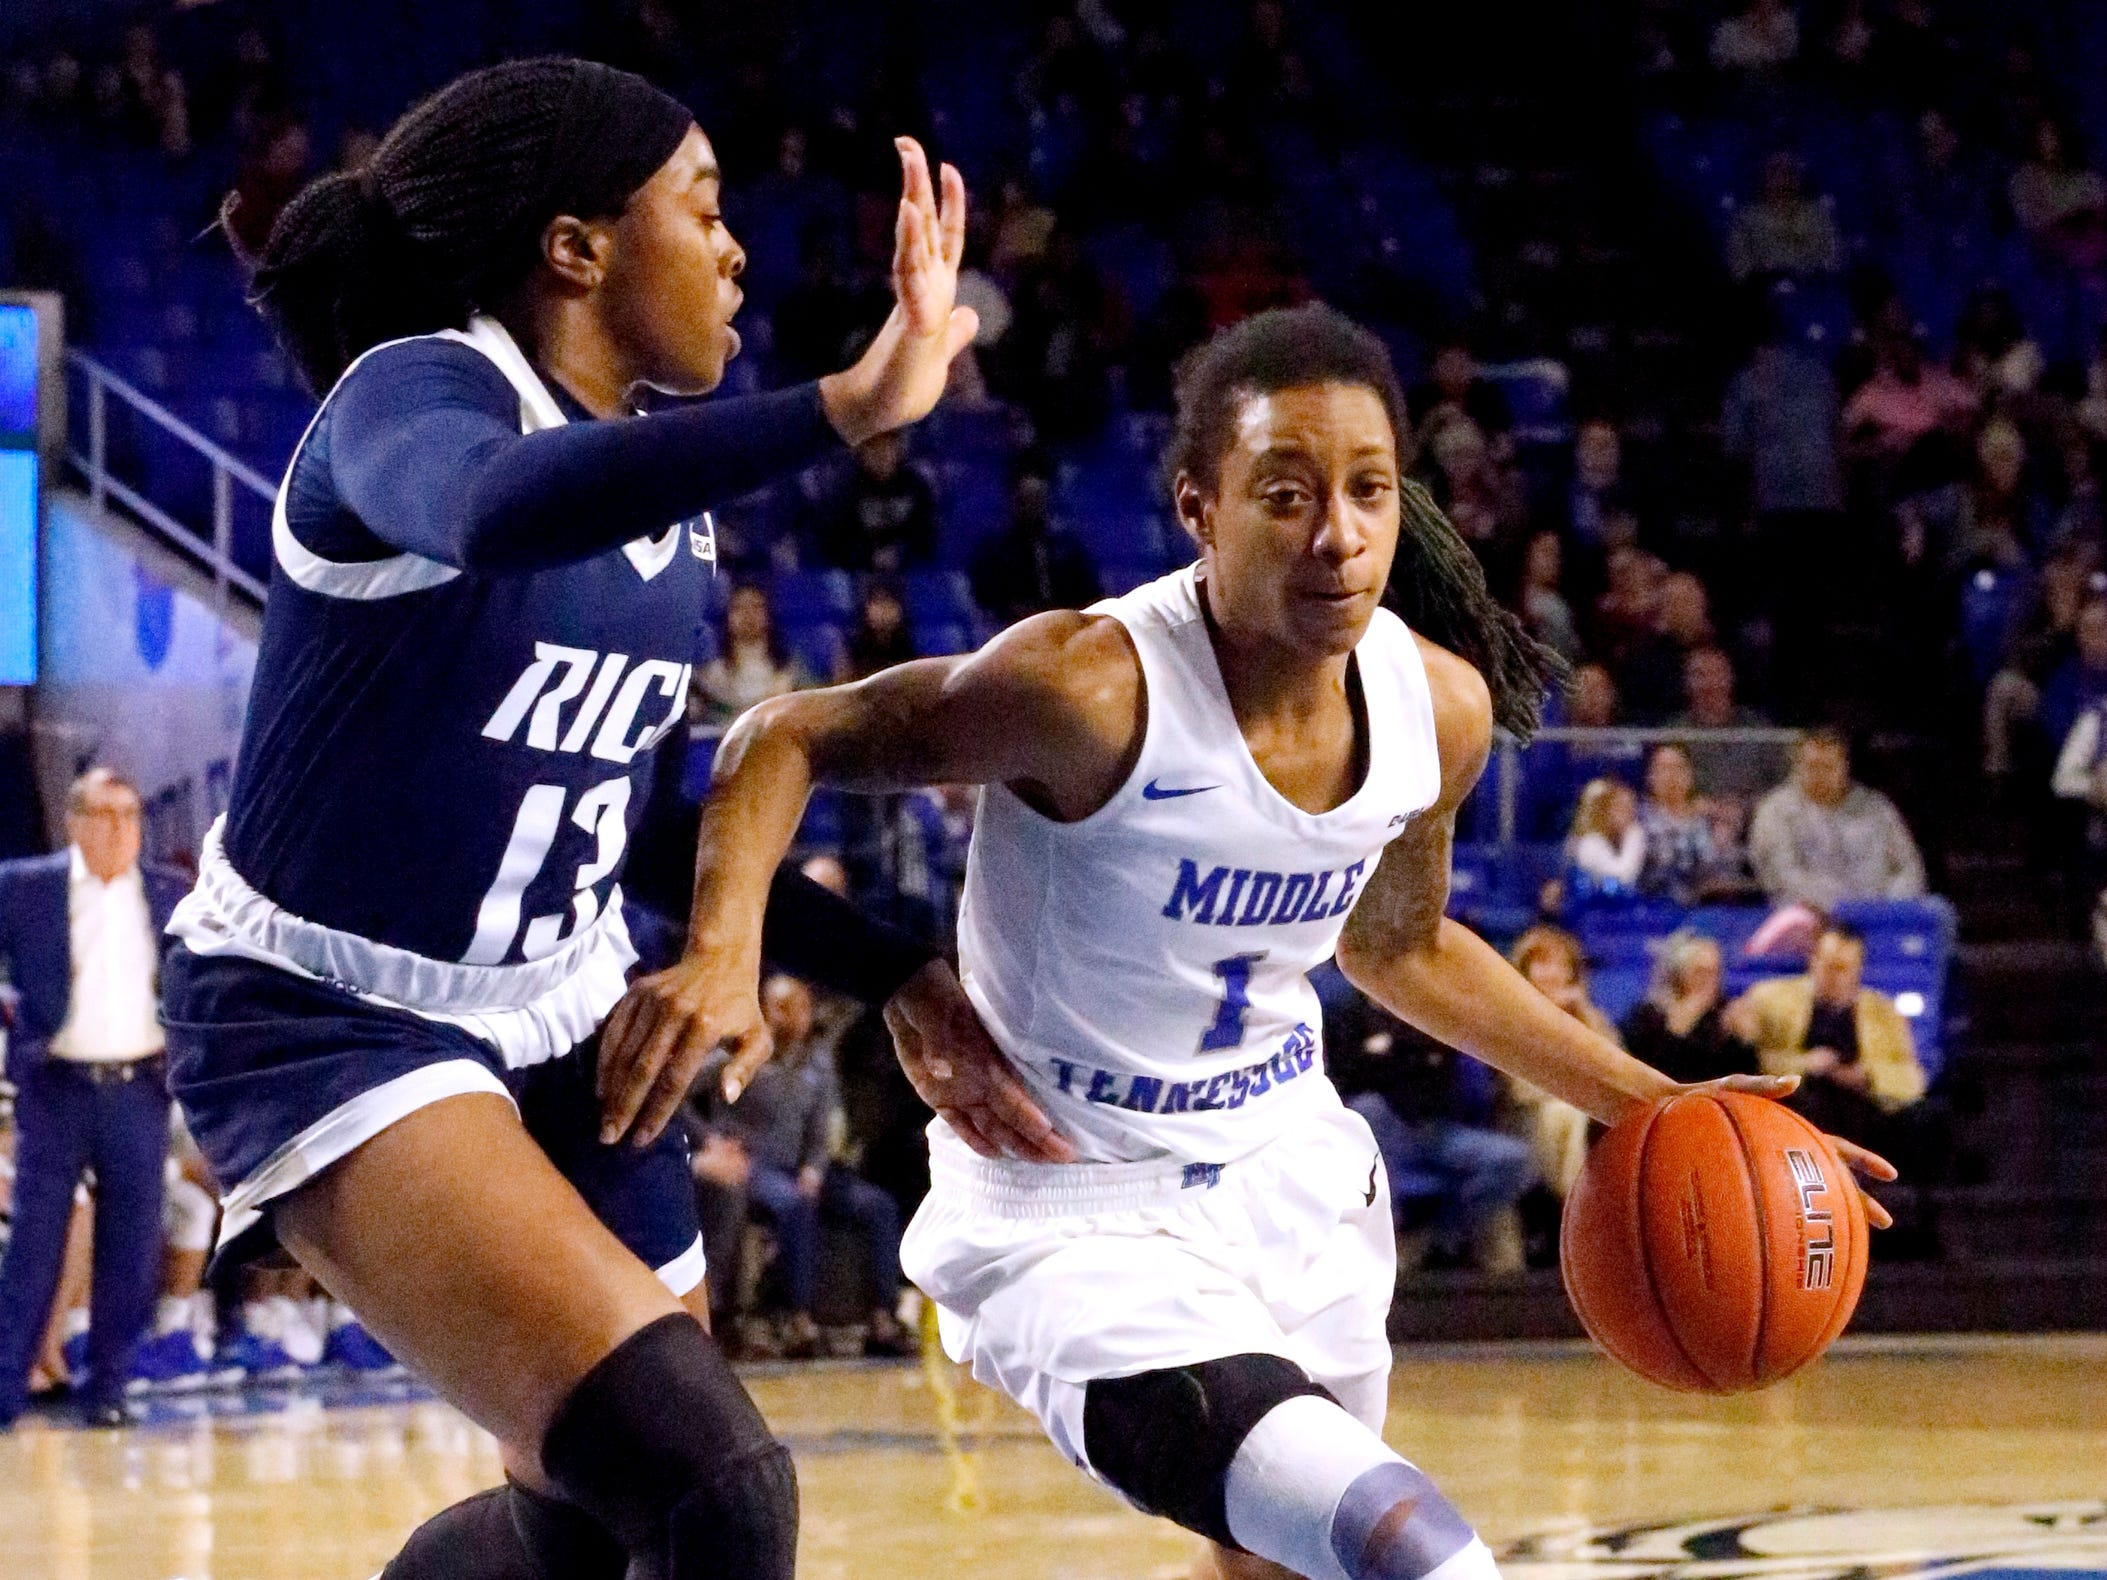 MTSU's guard A'Queen Hayes (1) drives to the basket as Rice's guard Erica Ogwumike (13) guards her on Thursday Jan. 24, 2019.